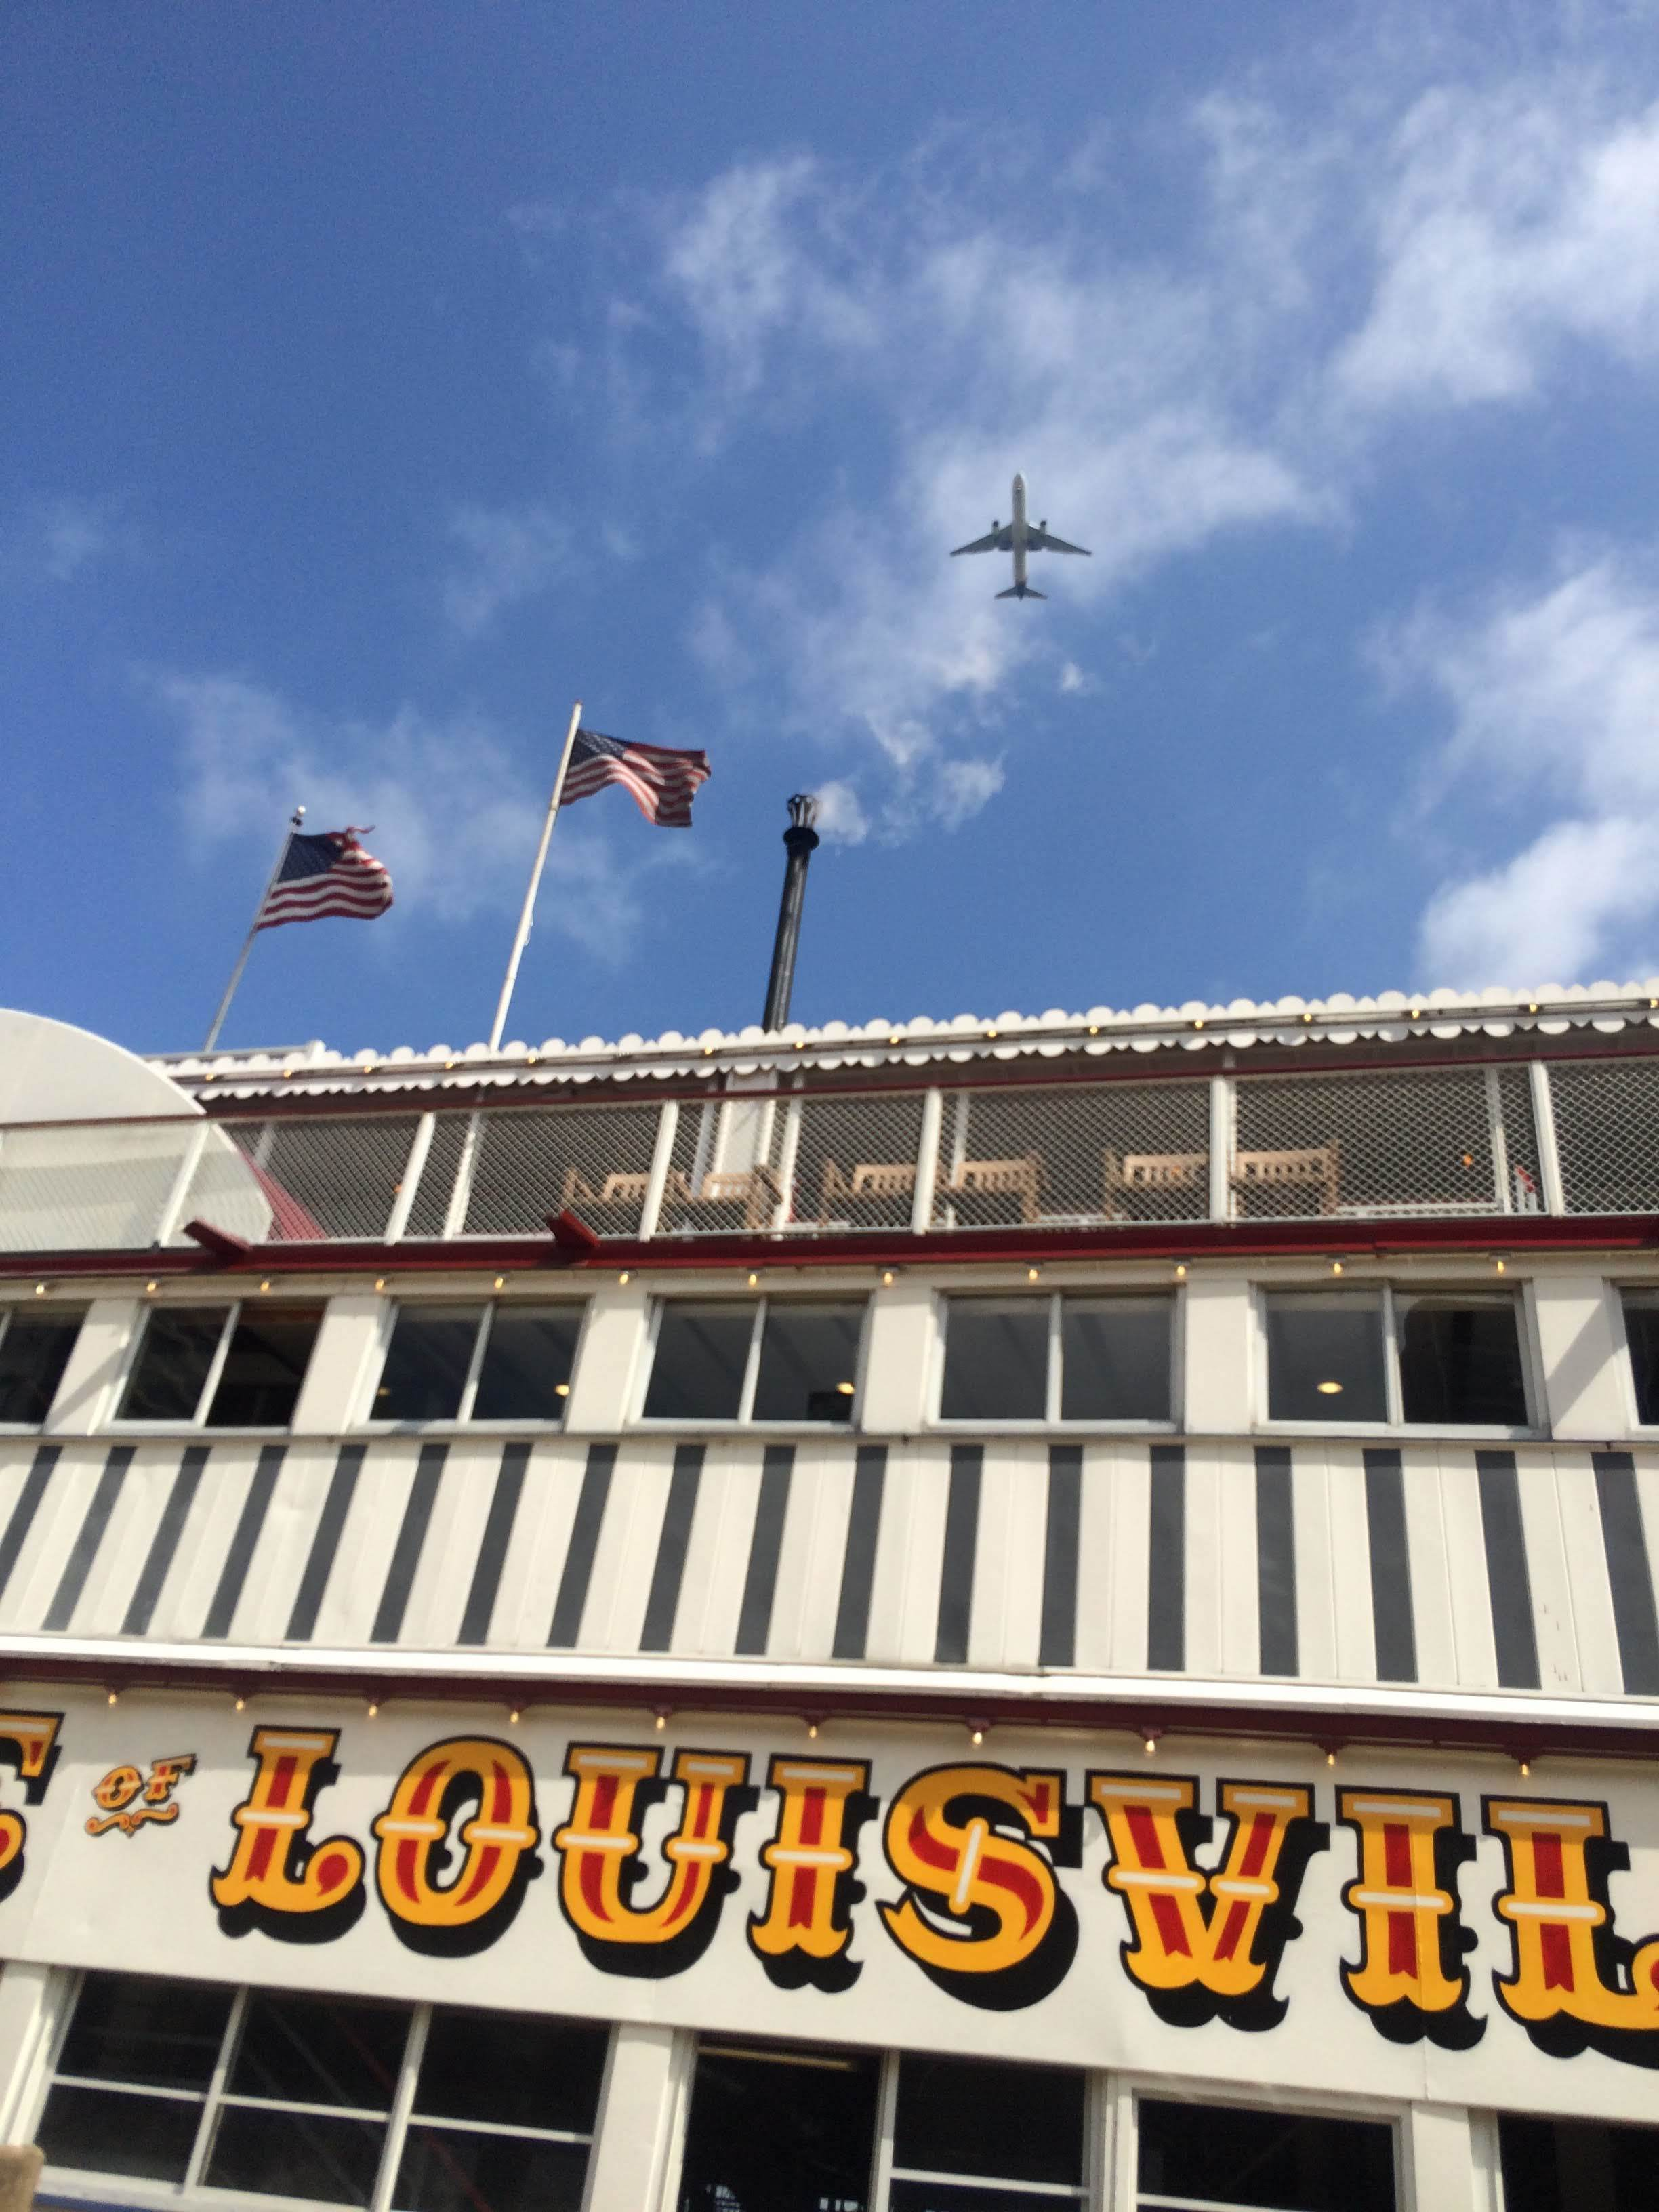 We had a sightseeing tour on the Belle of Louisville, the only paddle wheel boat in operation in the US where the wheel really powers the boat. All other wheels are just a decoration. We were in the plane flight path so I tried to get the timing just right